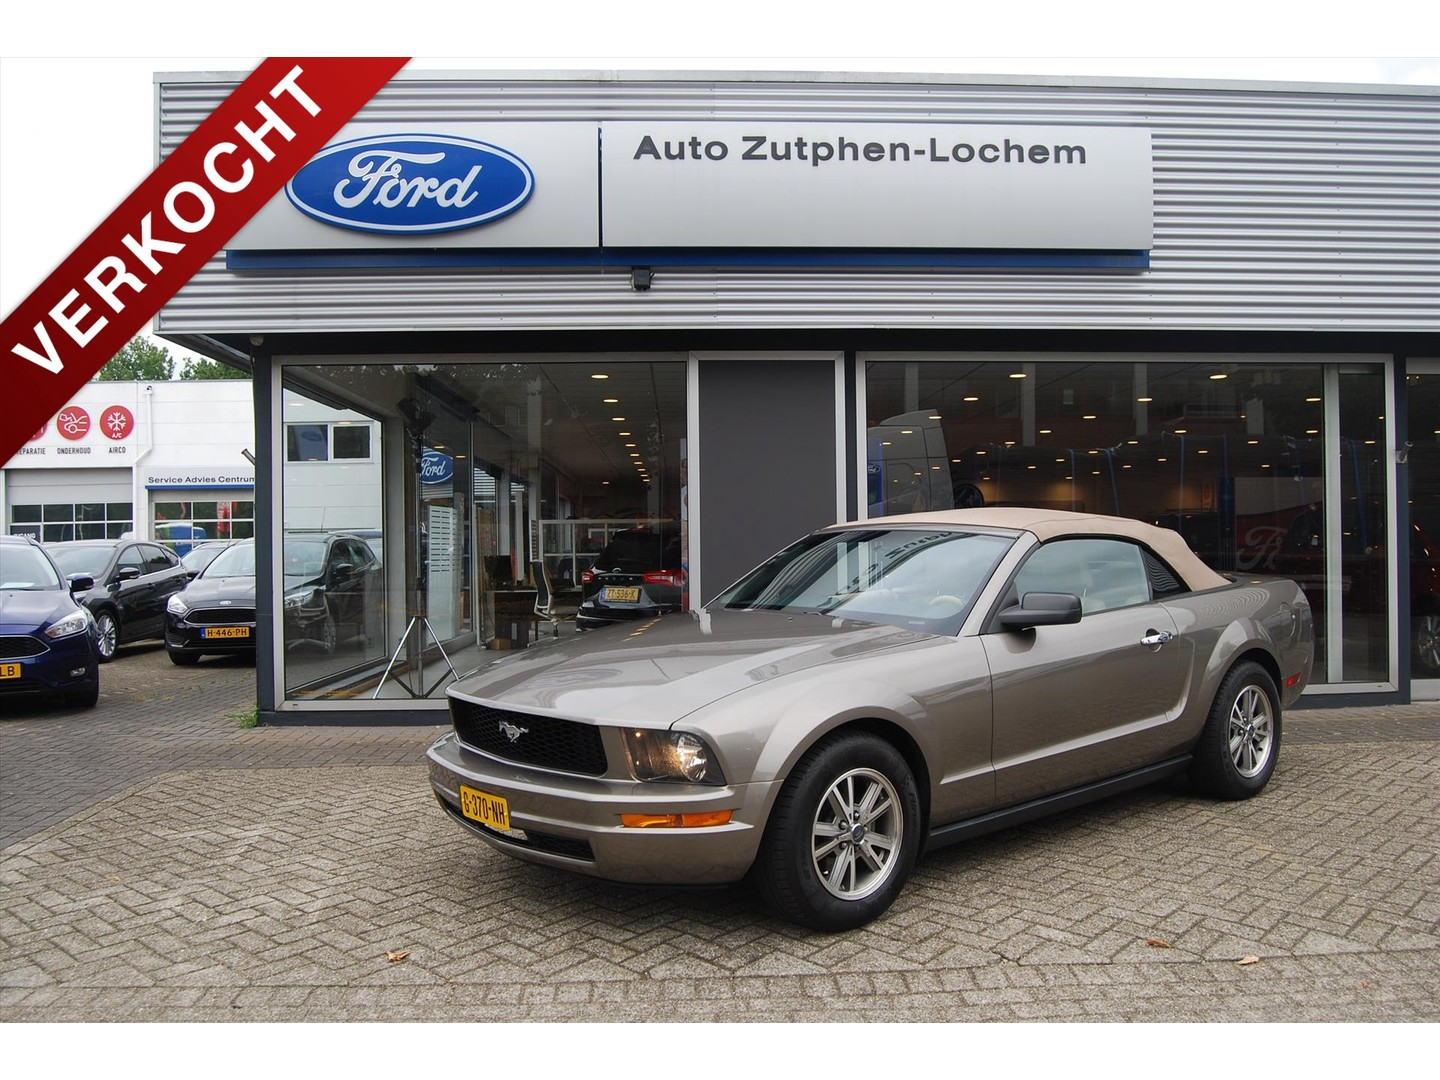 Ford Mustang Convertible 4.0 v6 204pk automaat